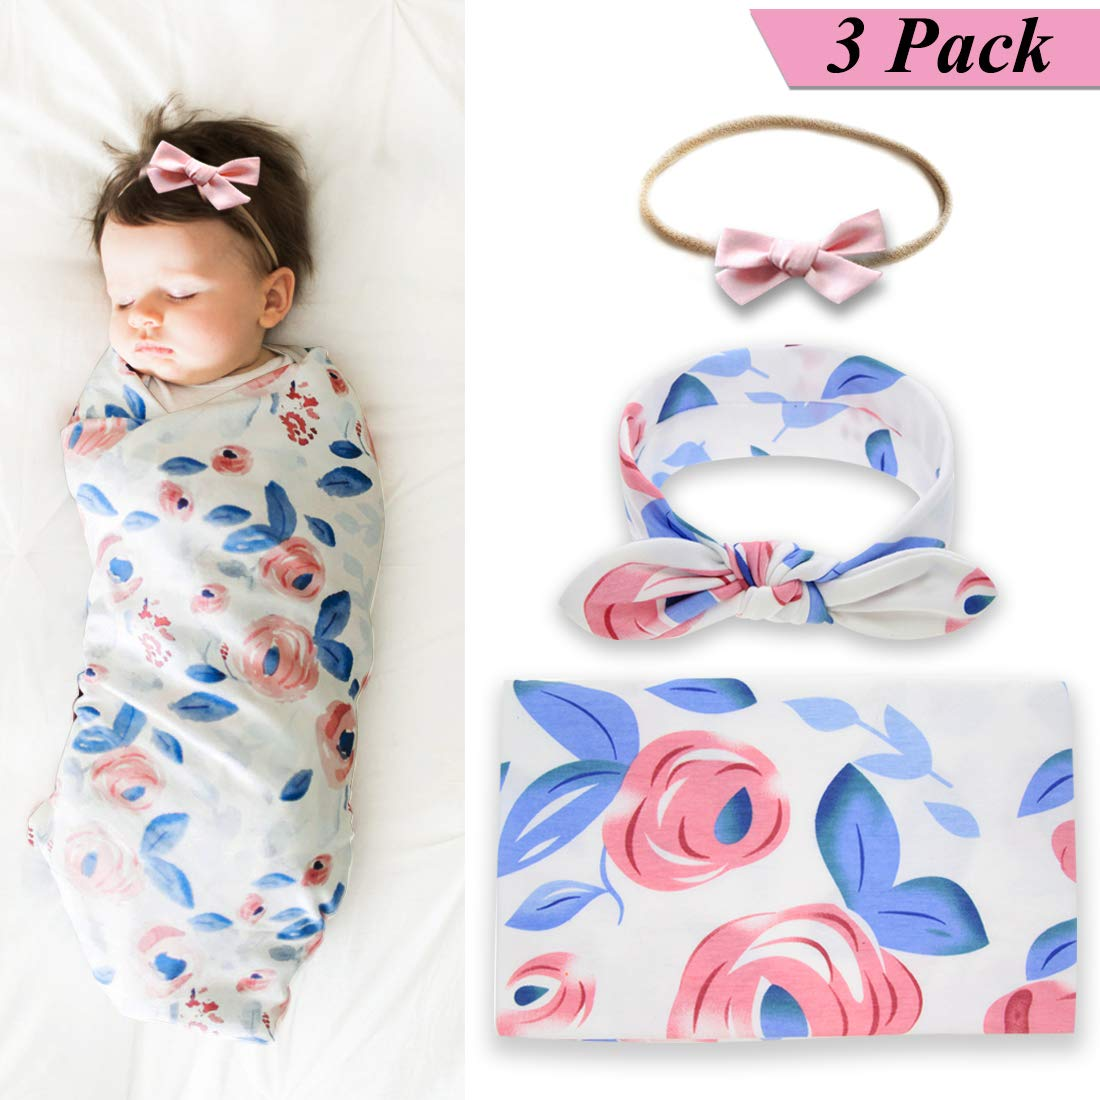 Newborn Baby Swaddle Blanket and Bow Headband Set Baby Receiving Blankets Baby Shower Gift (Blue)